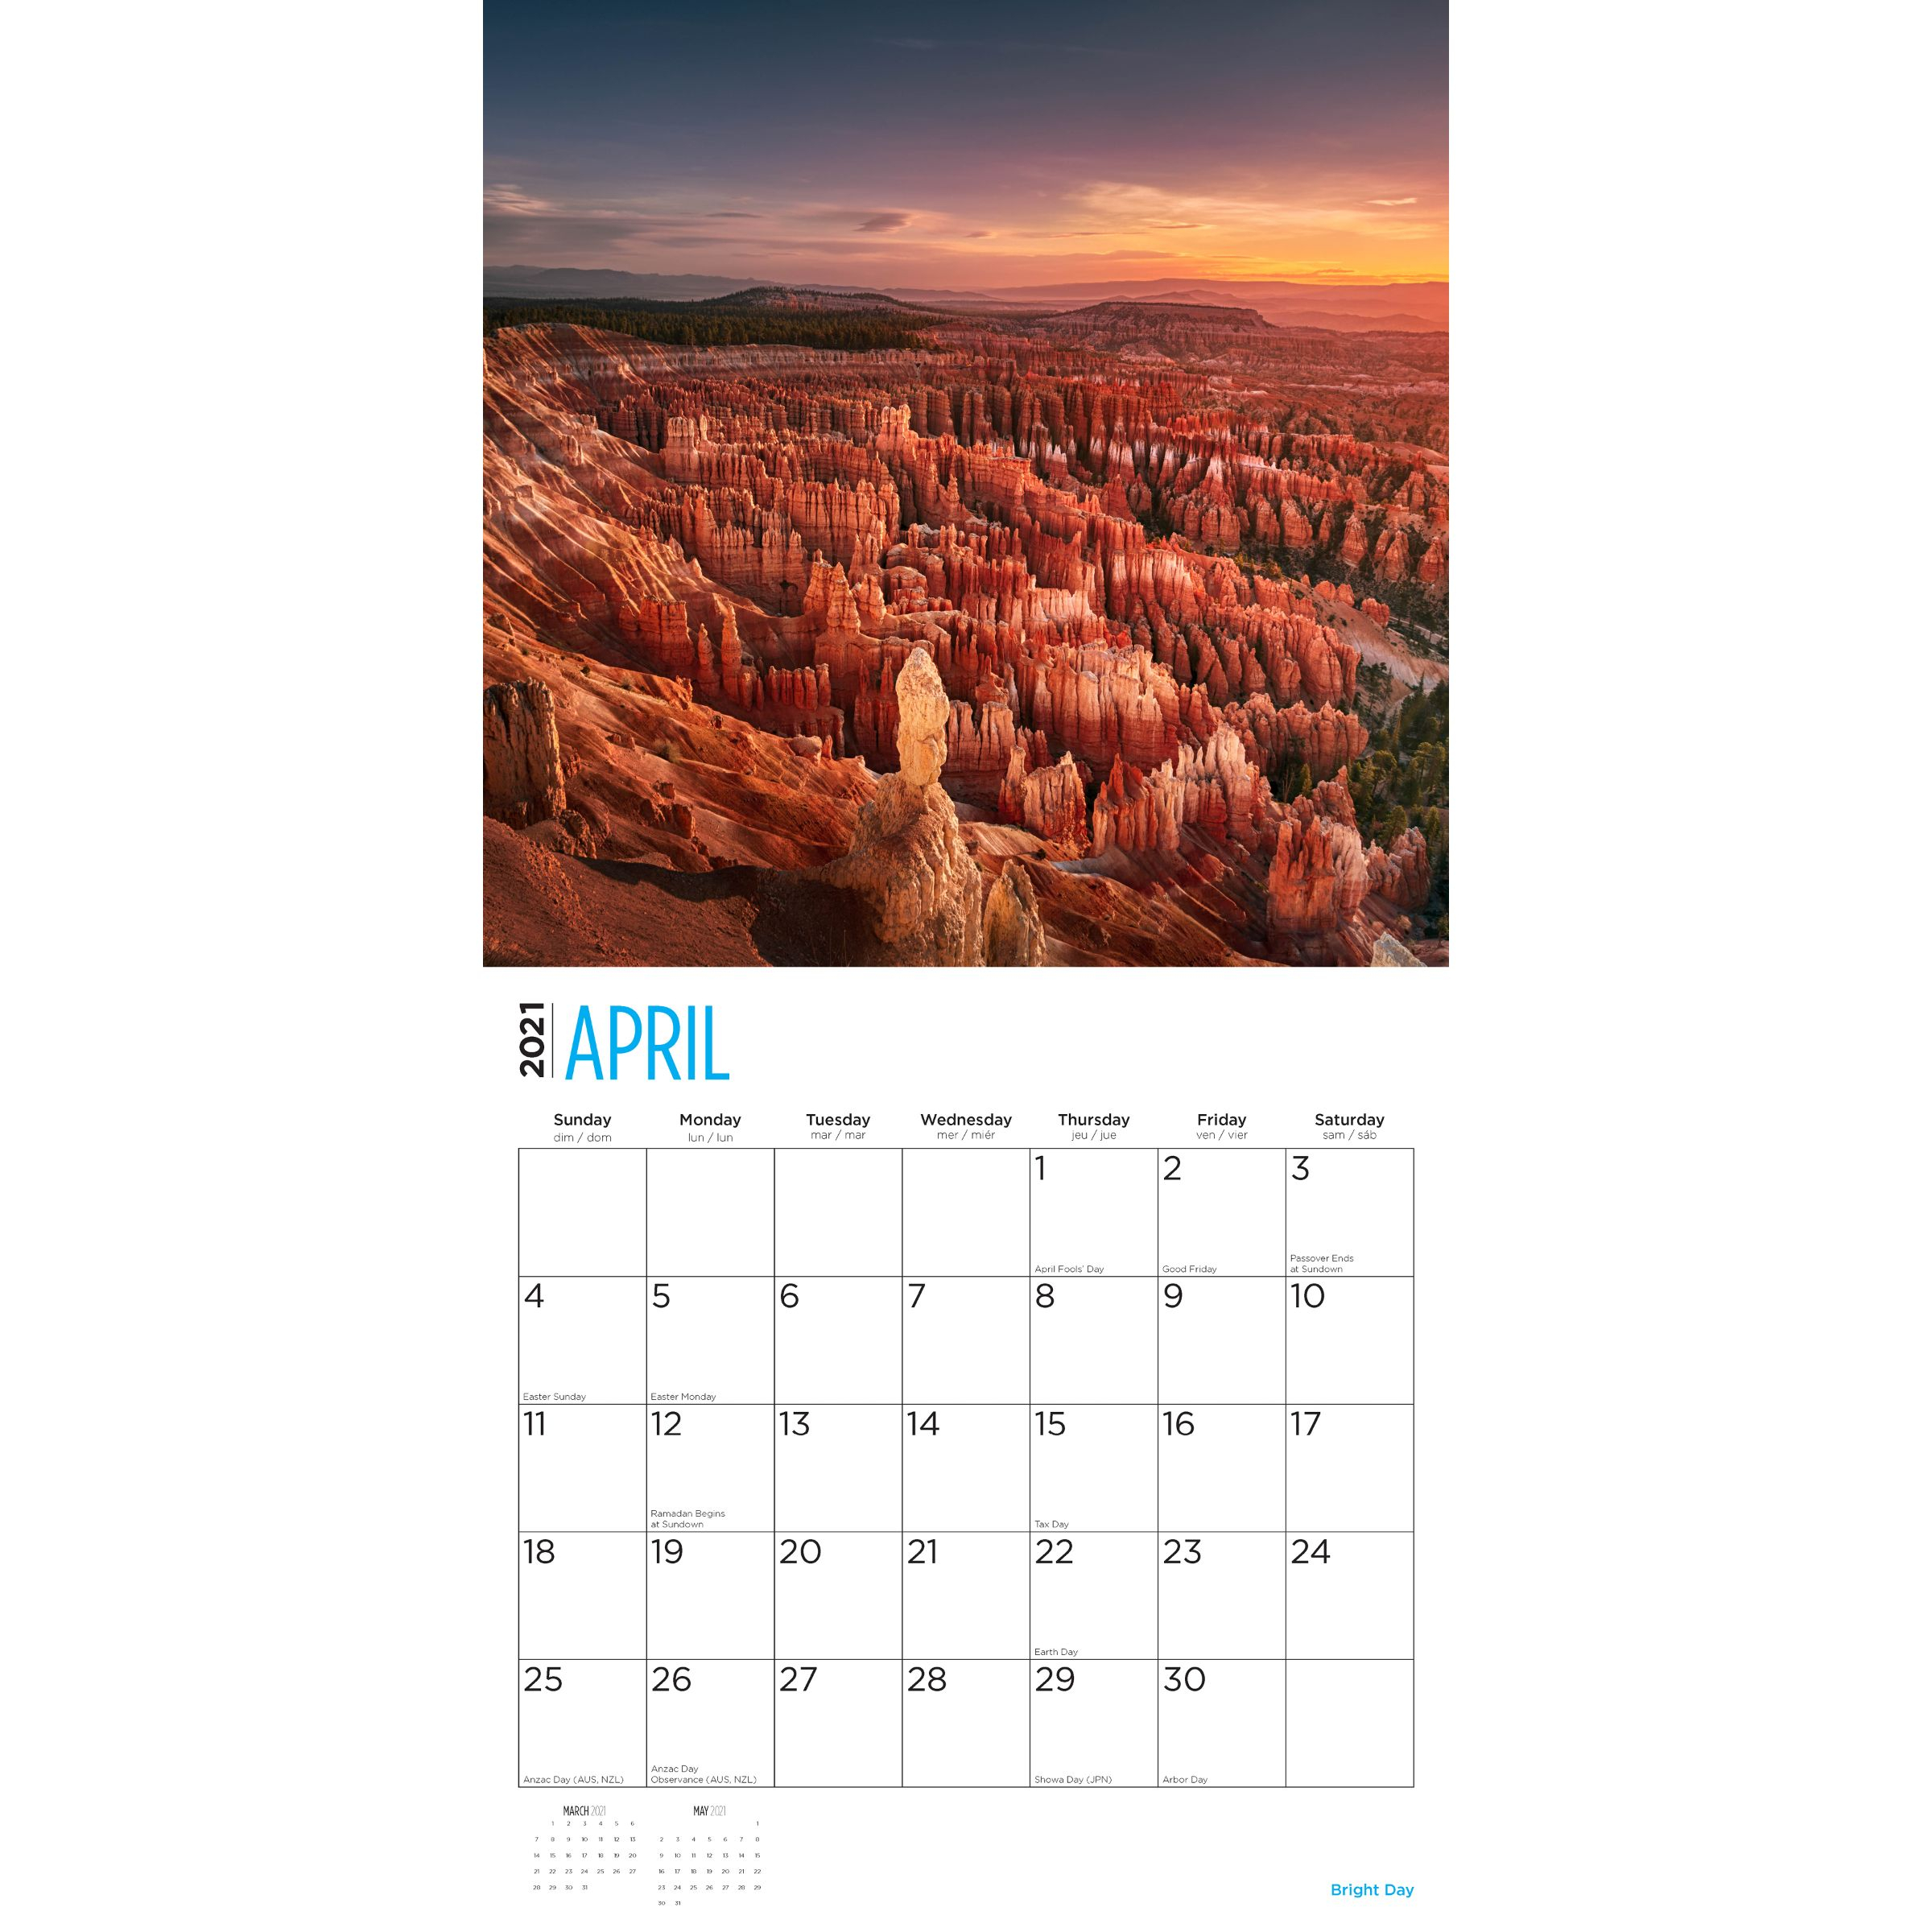 2021 National Parks Wall Calendar  Bright Day Calendars regarding National Food Calendar 2021